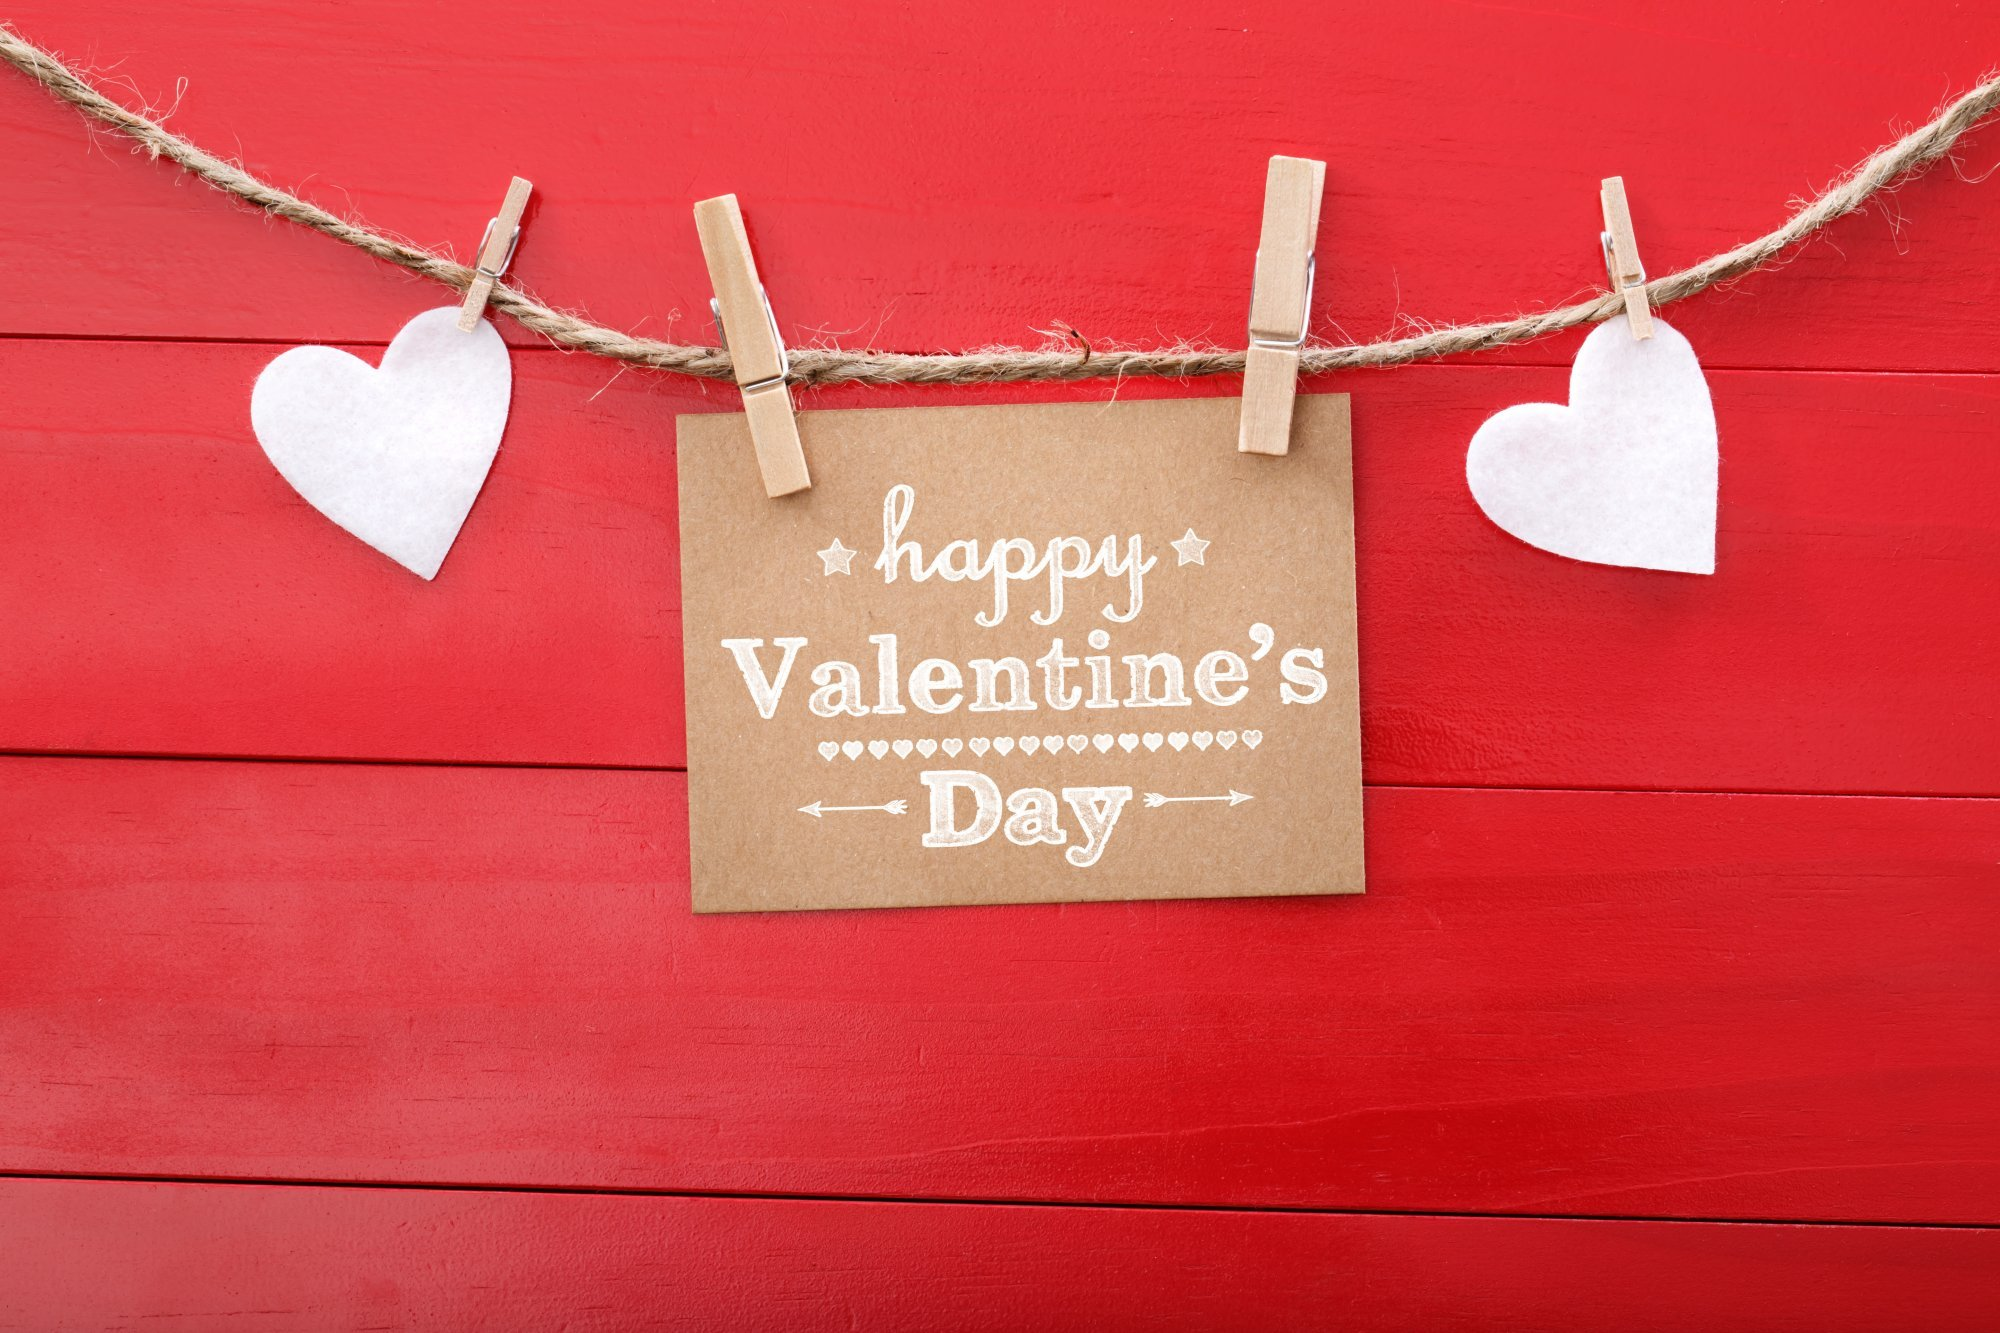 Valentines Day Events in Boulder, CO